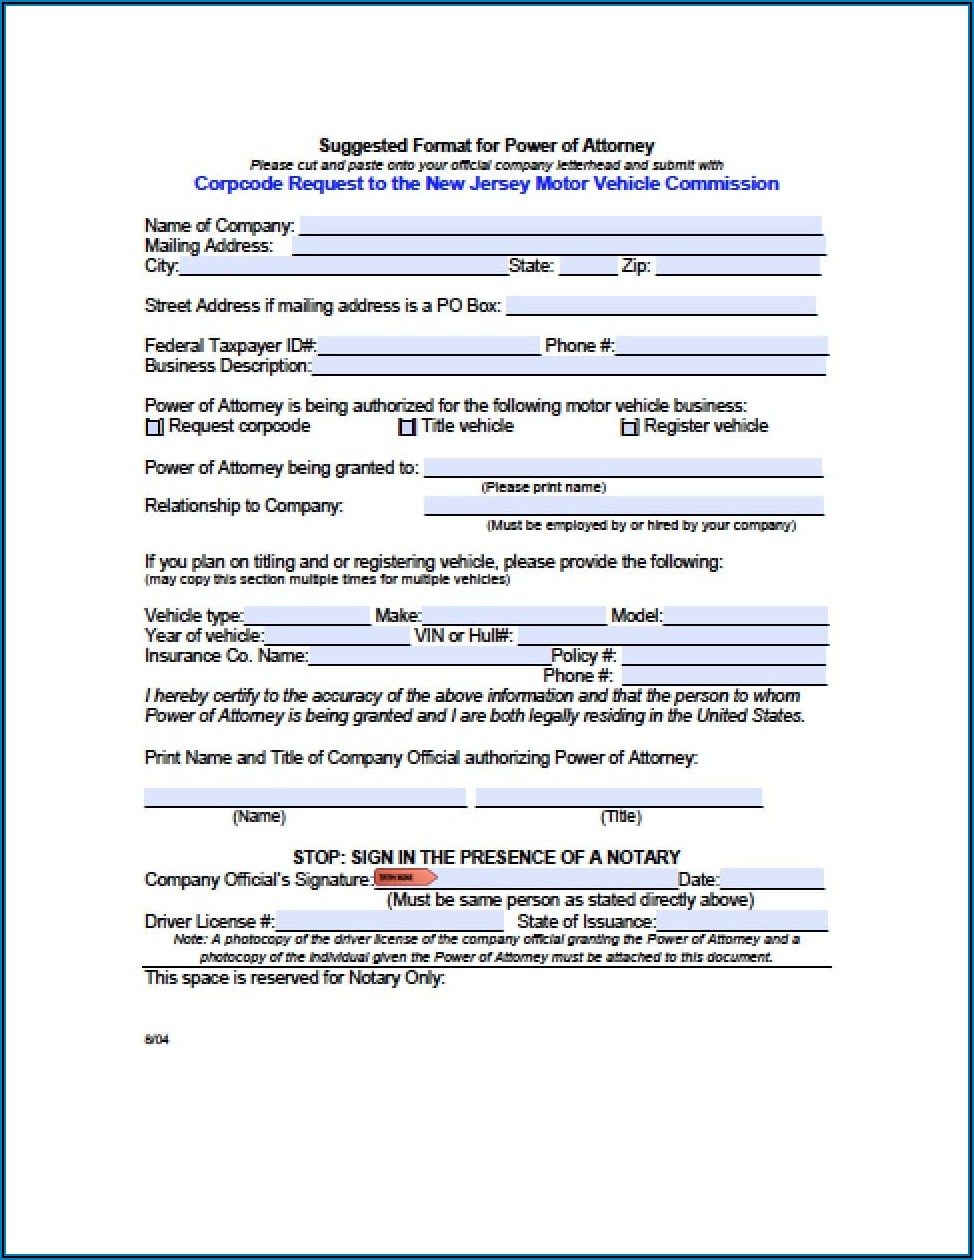 Free Medical Power Of Attorney Form New Jersey